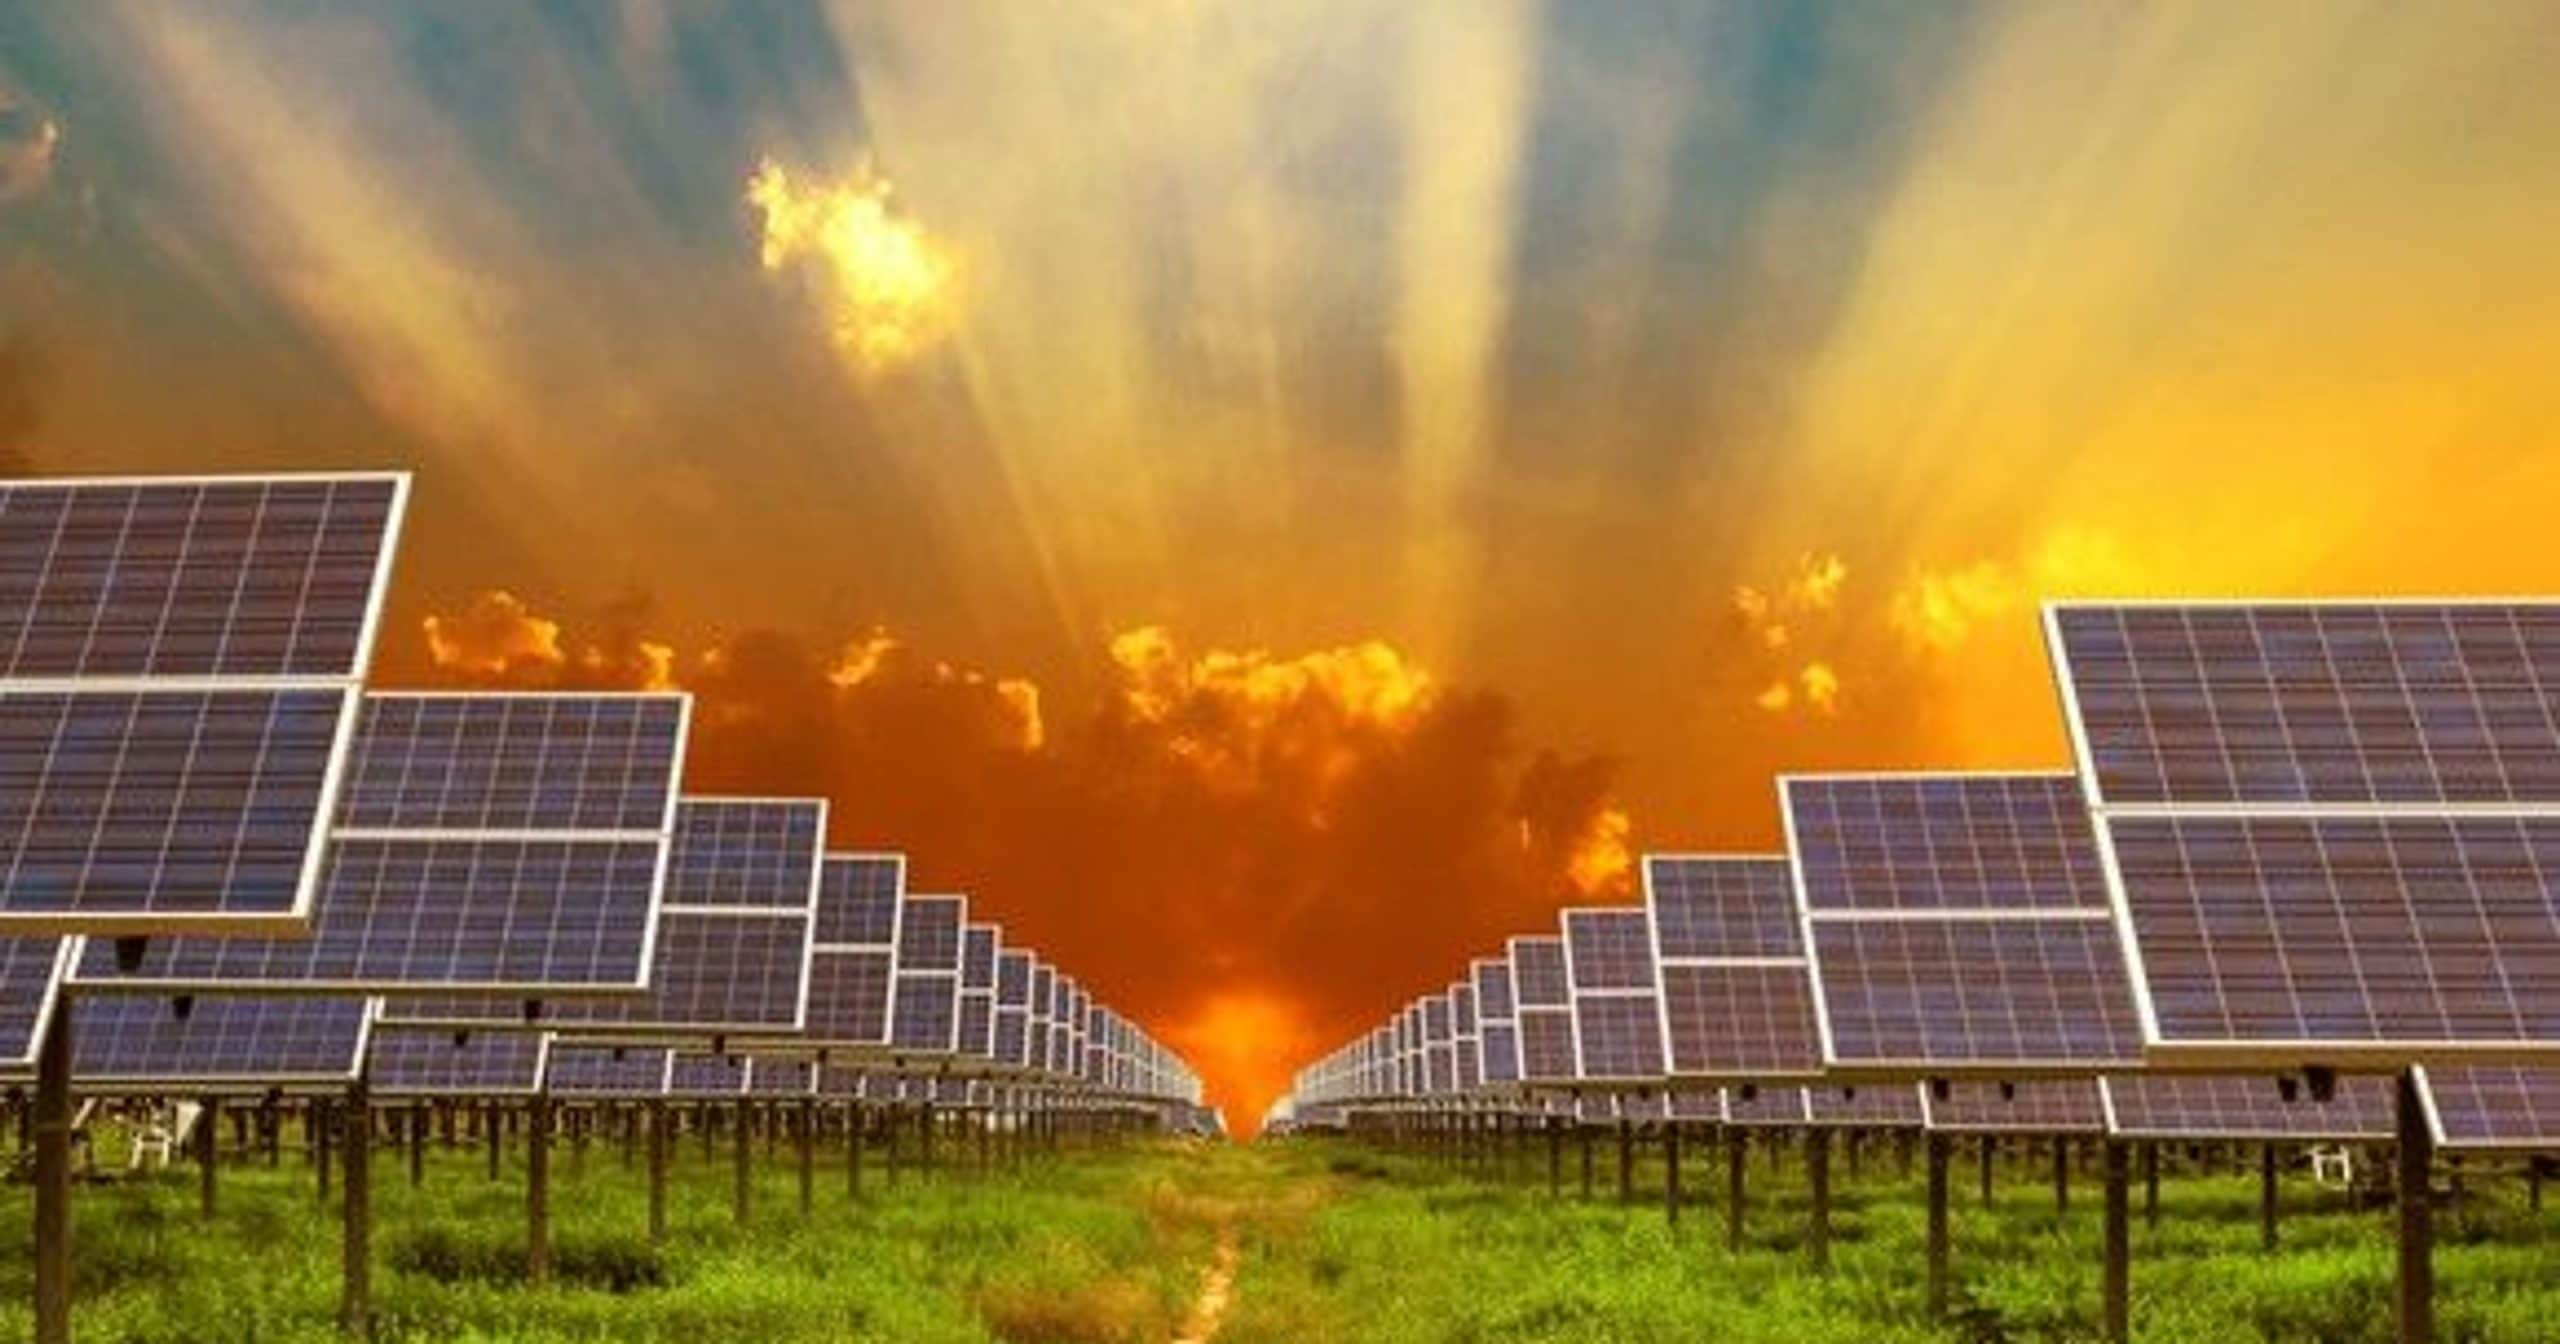 Siemens Gamesa Secures 250 Mw Solar Energy Order From